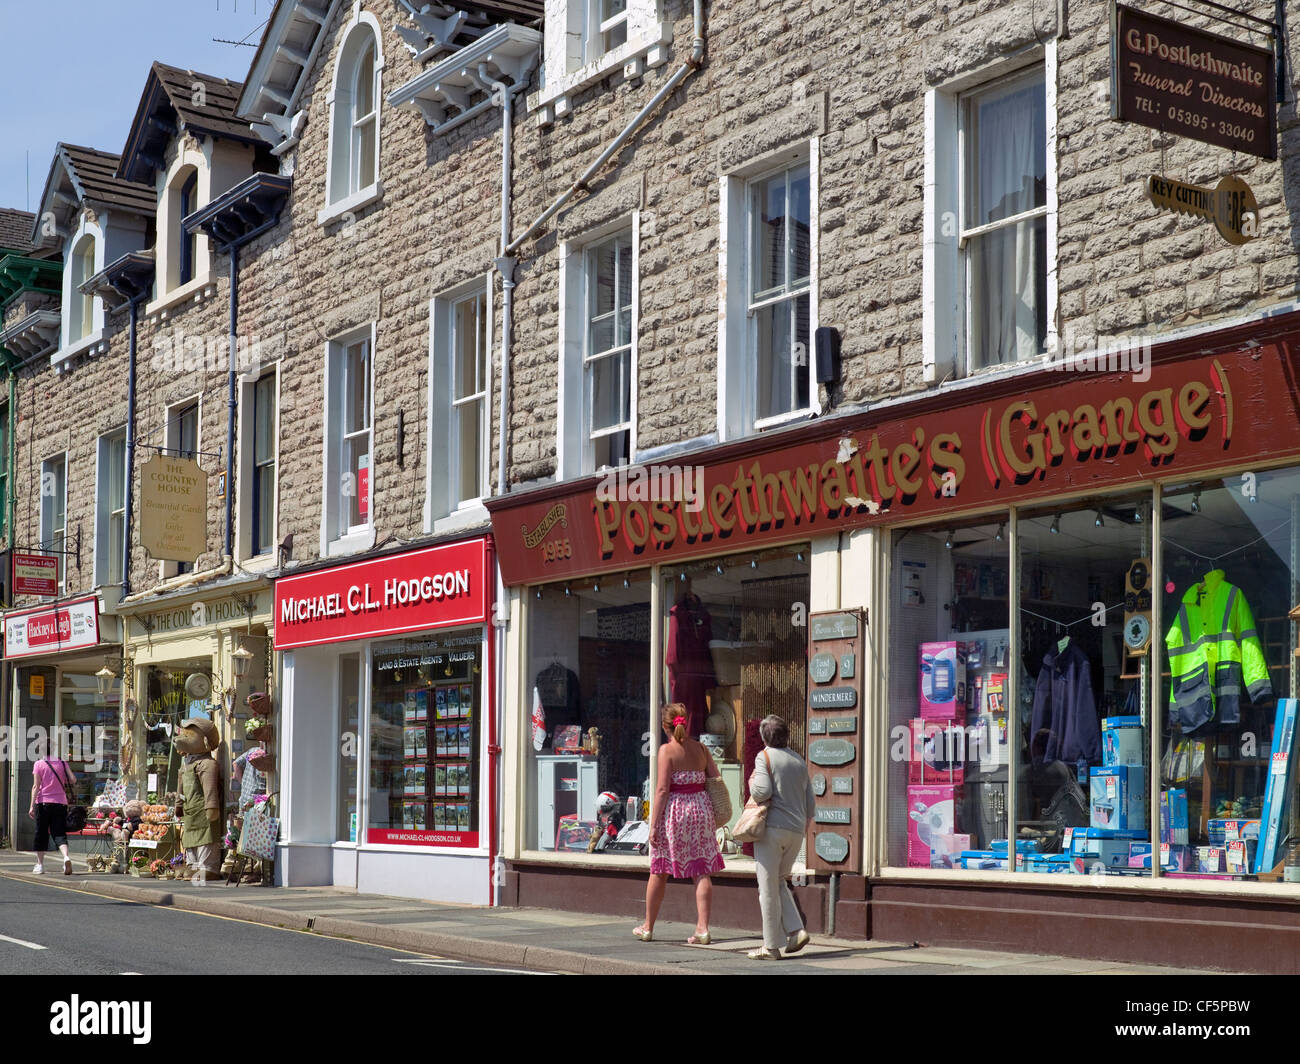 Edwardian shopfronts in the town centre. - Stock Image